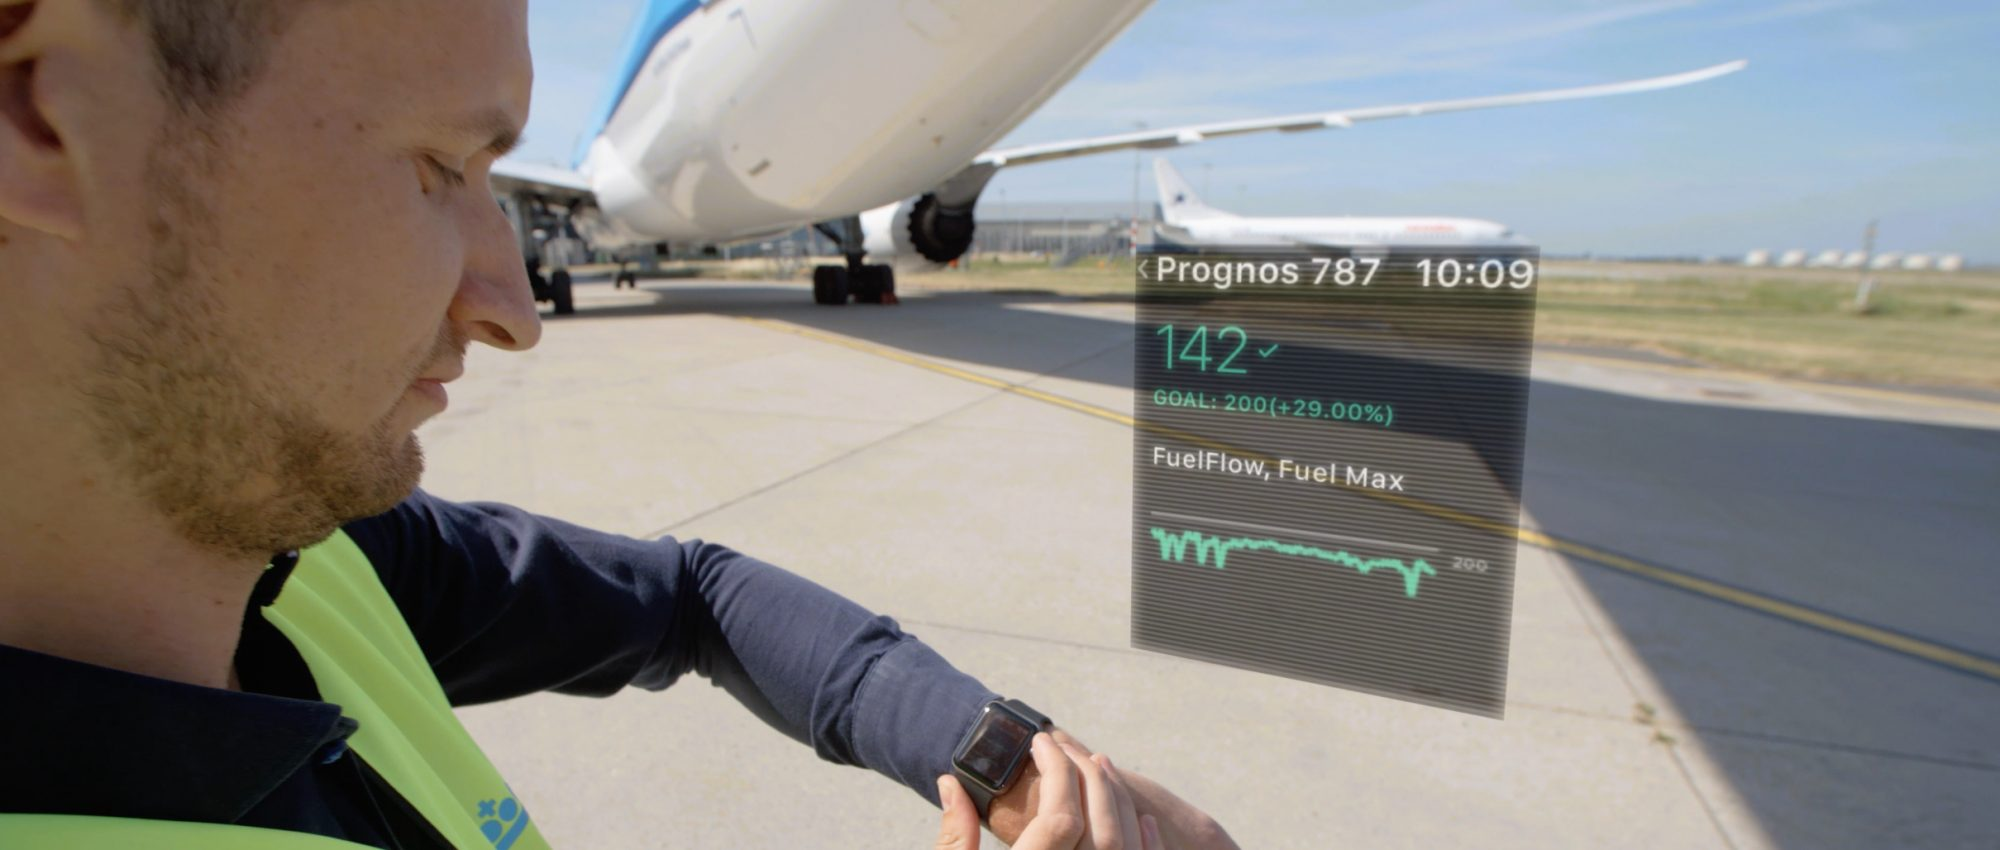 Guy standing next to plane looking at Smartwatch to check reporting.